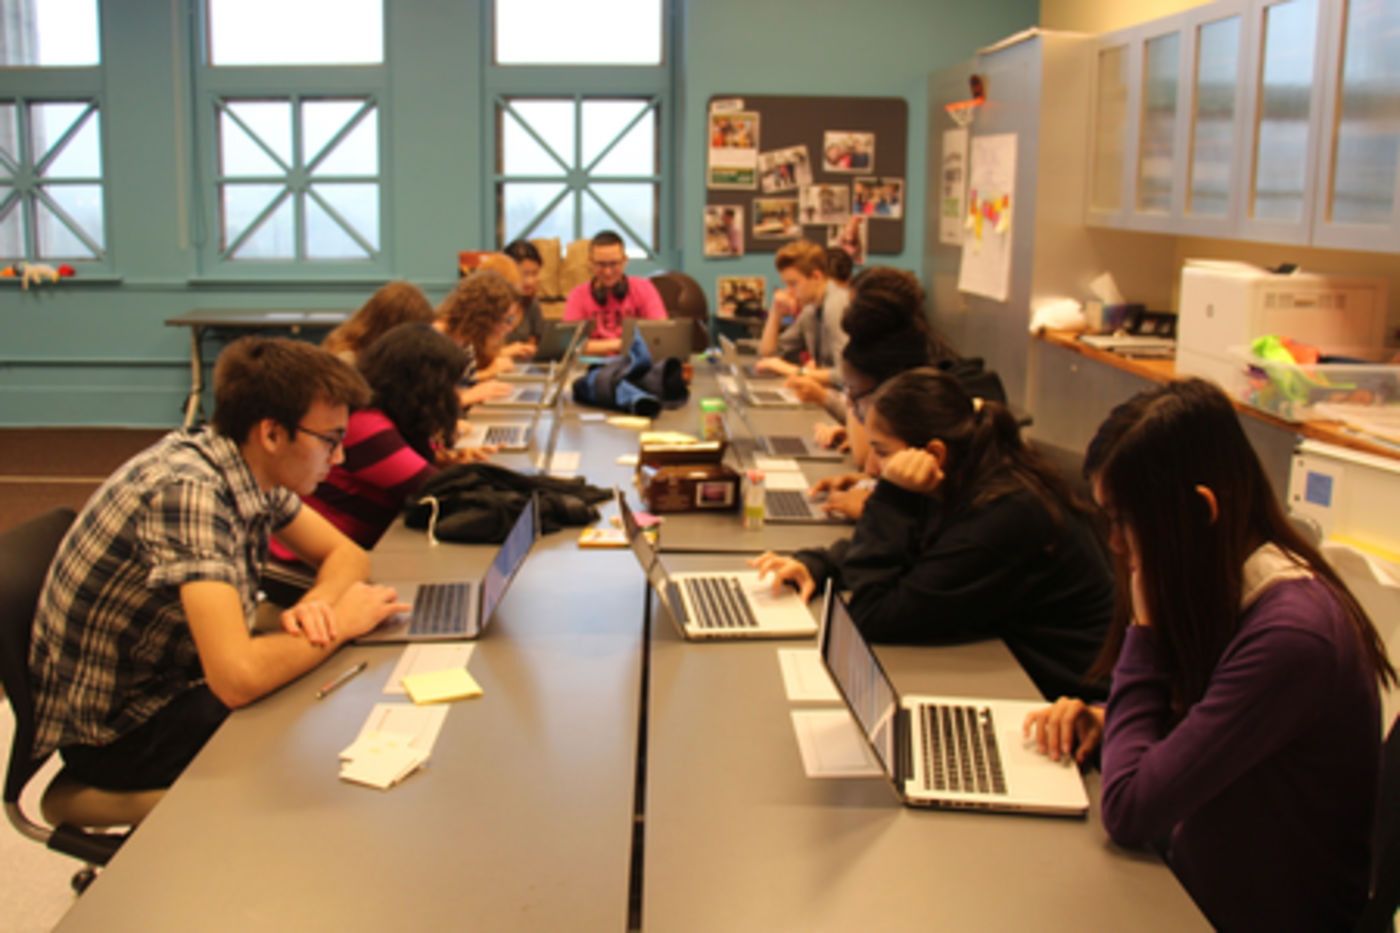 Two rows of teens sit at a long, gray table in a room with three large windows against the back wall. Each teen is looking at their own laptop computer.